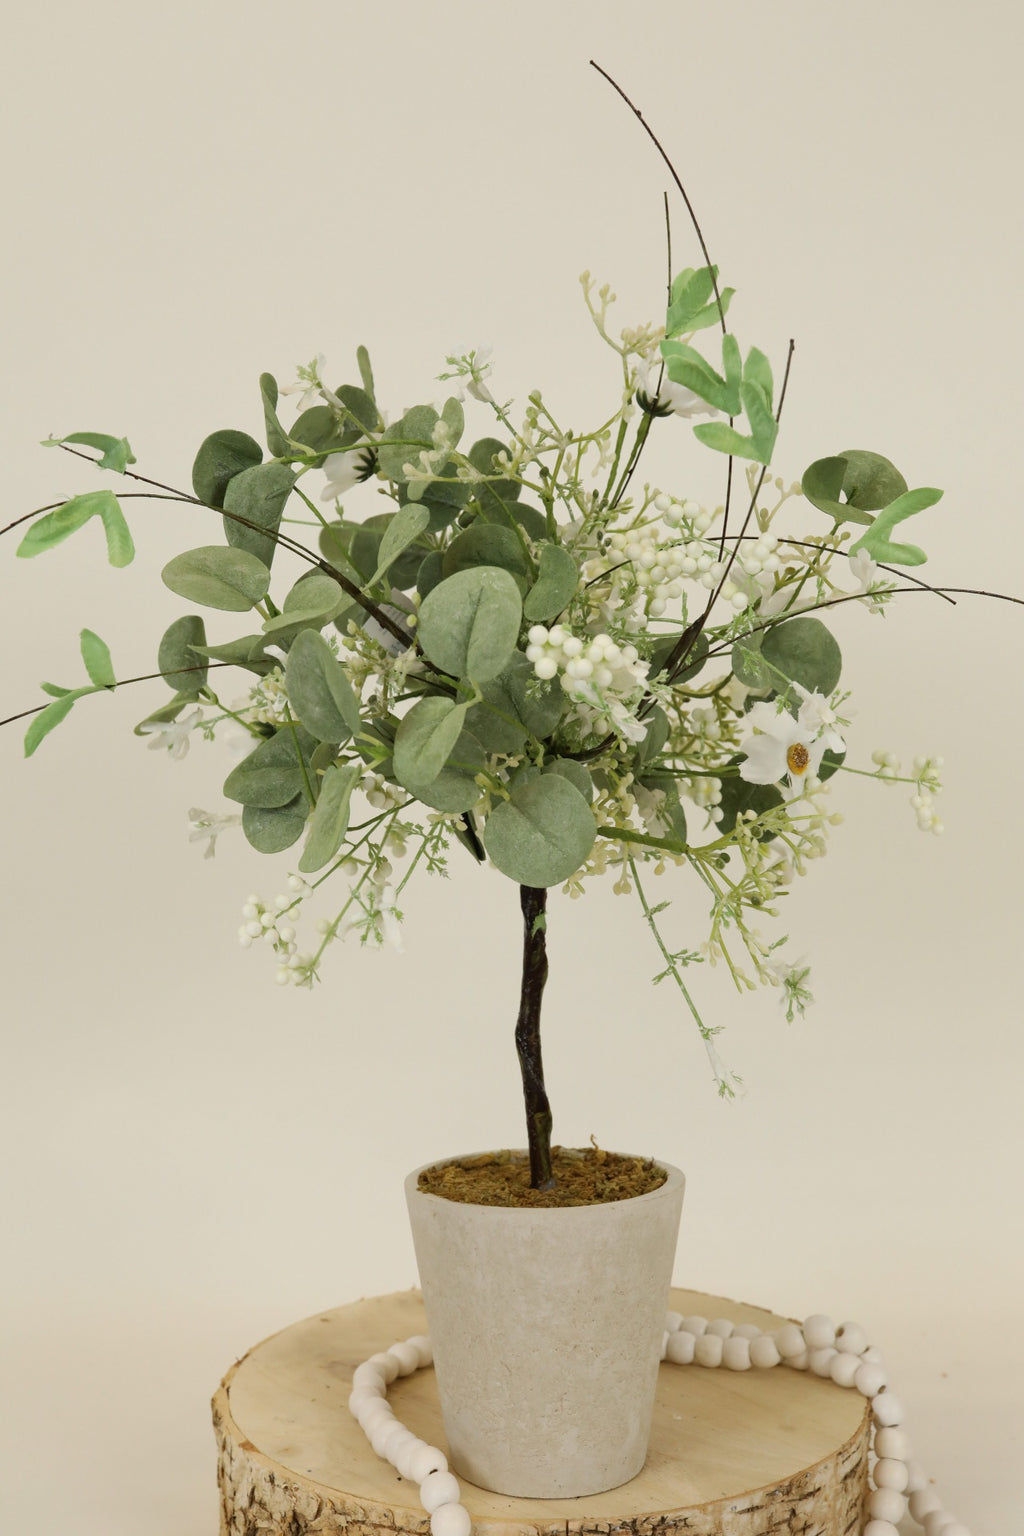 Jubilee Potted Tree